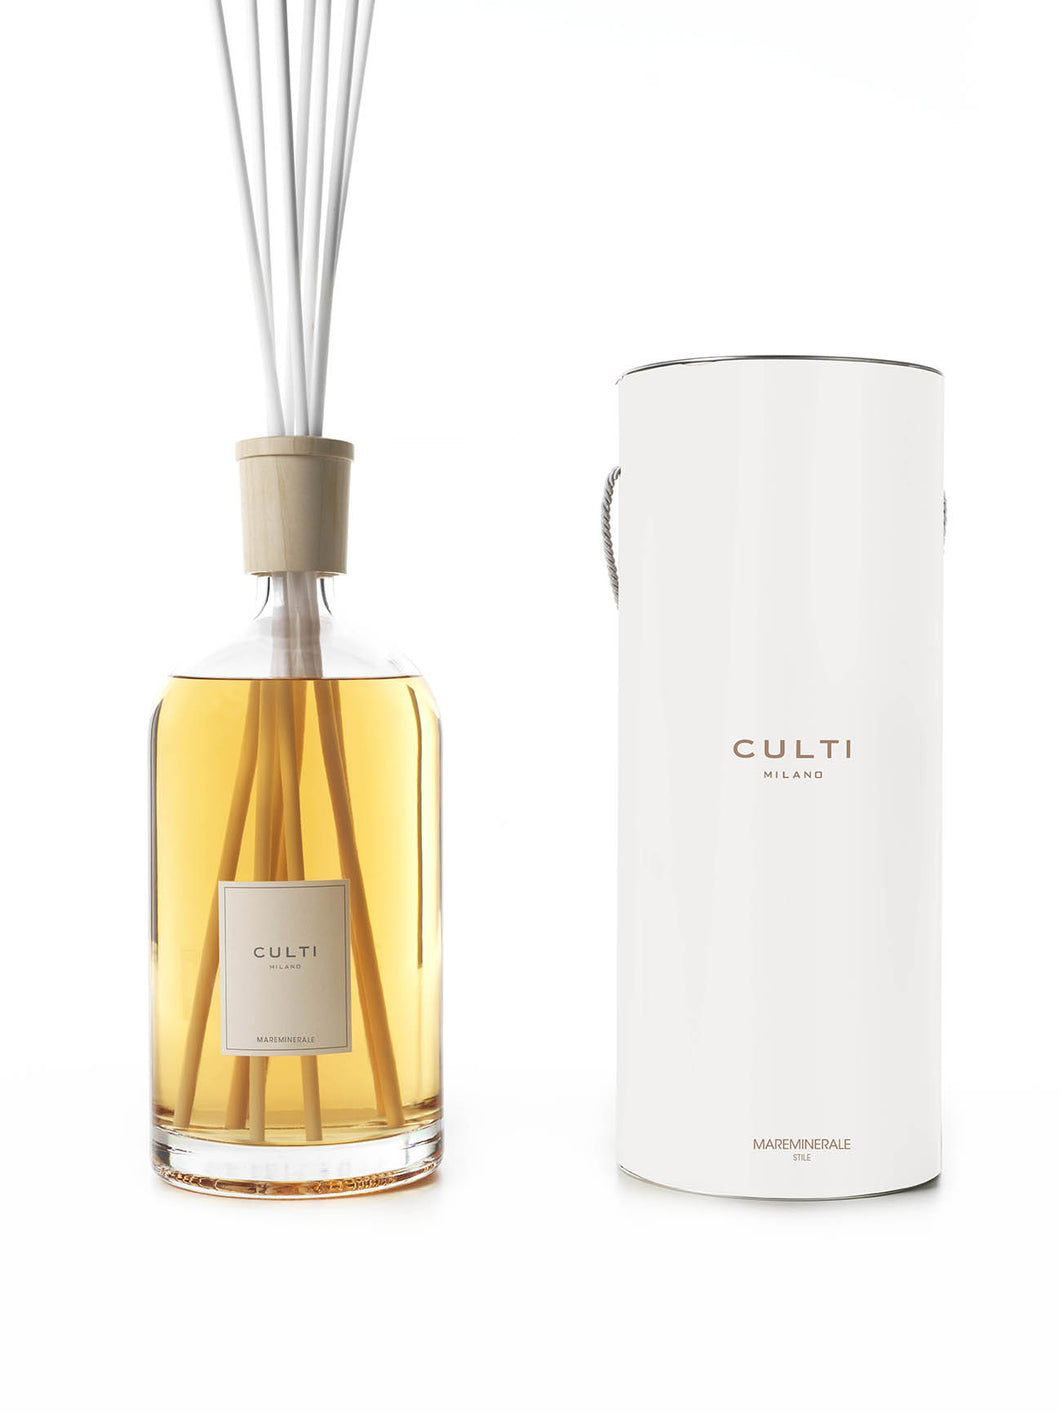 CULTI STILE CLASSIC 4300ML MAREMINERALE